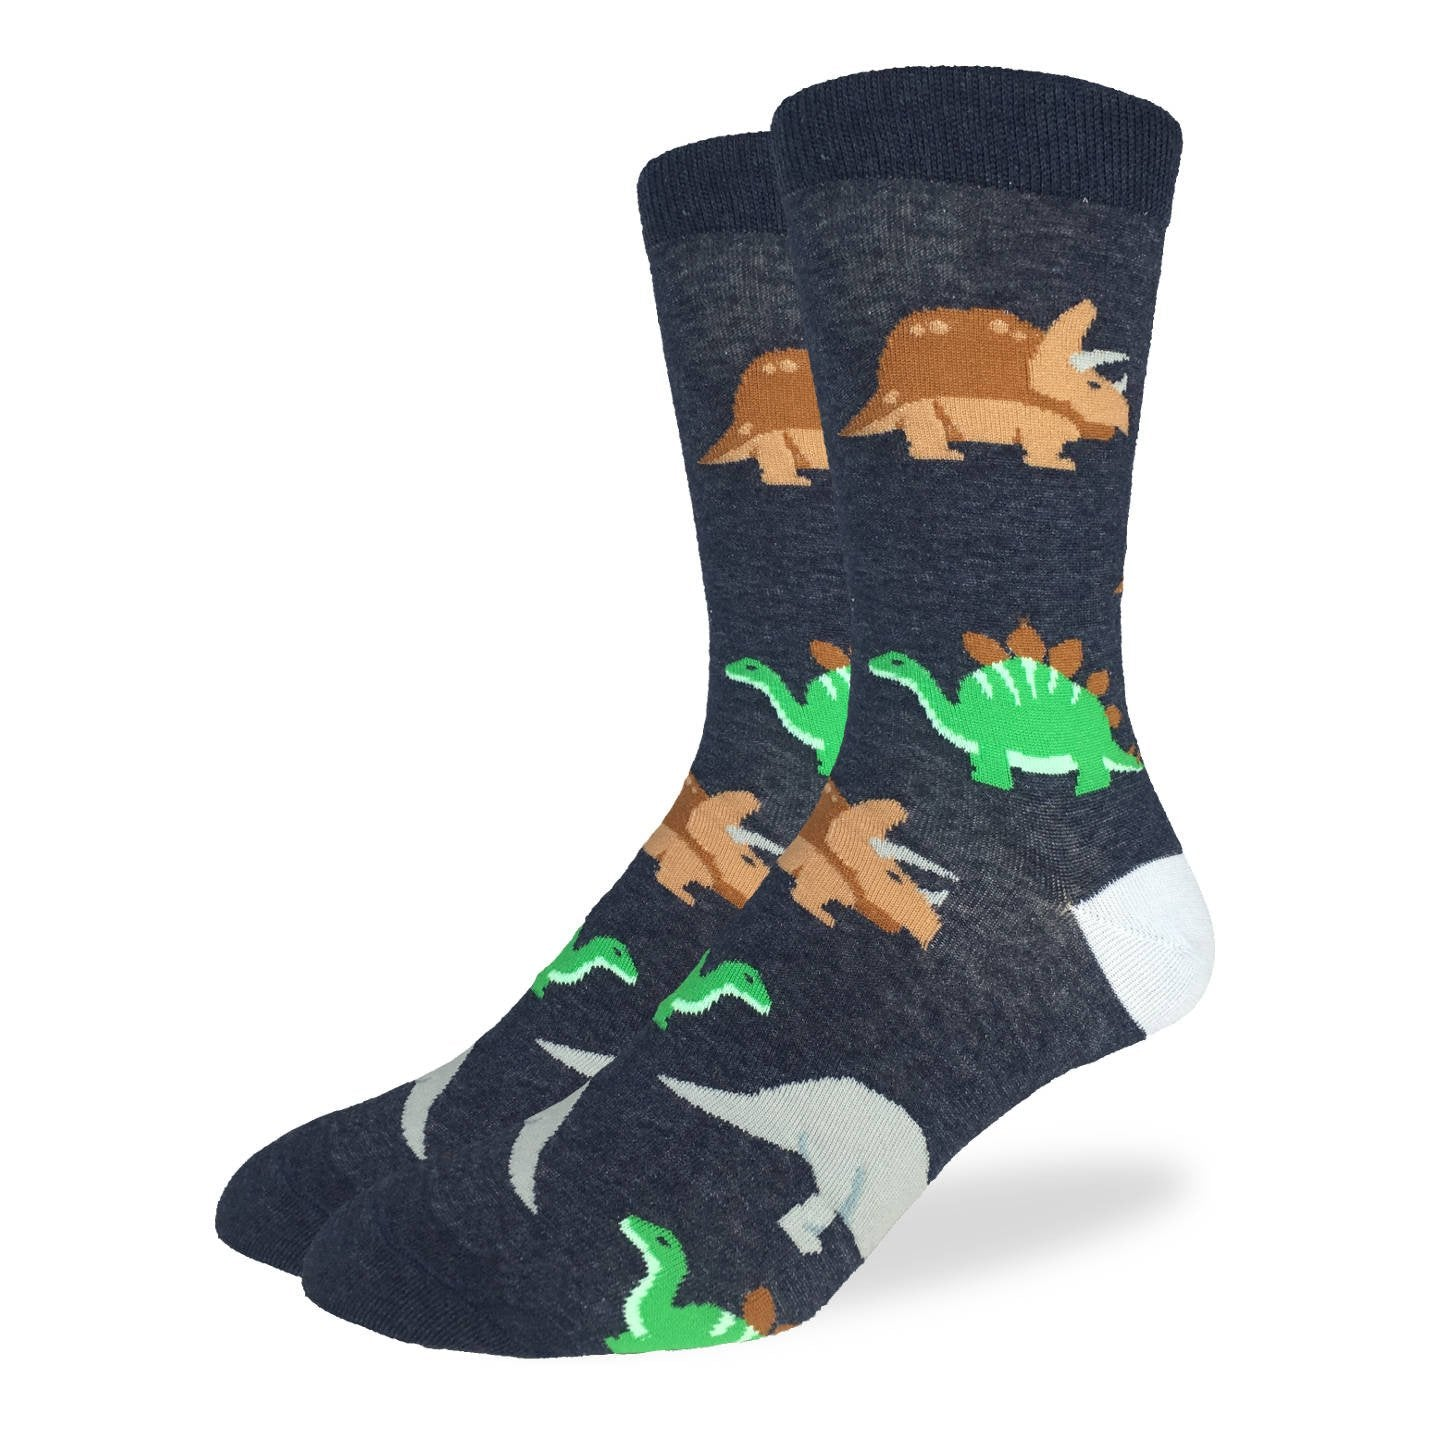 Men's King Size Jurassic Dinosaurs Socks - Good Luck Sock